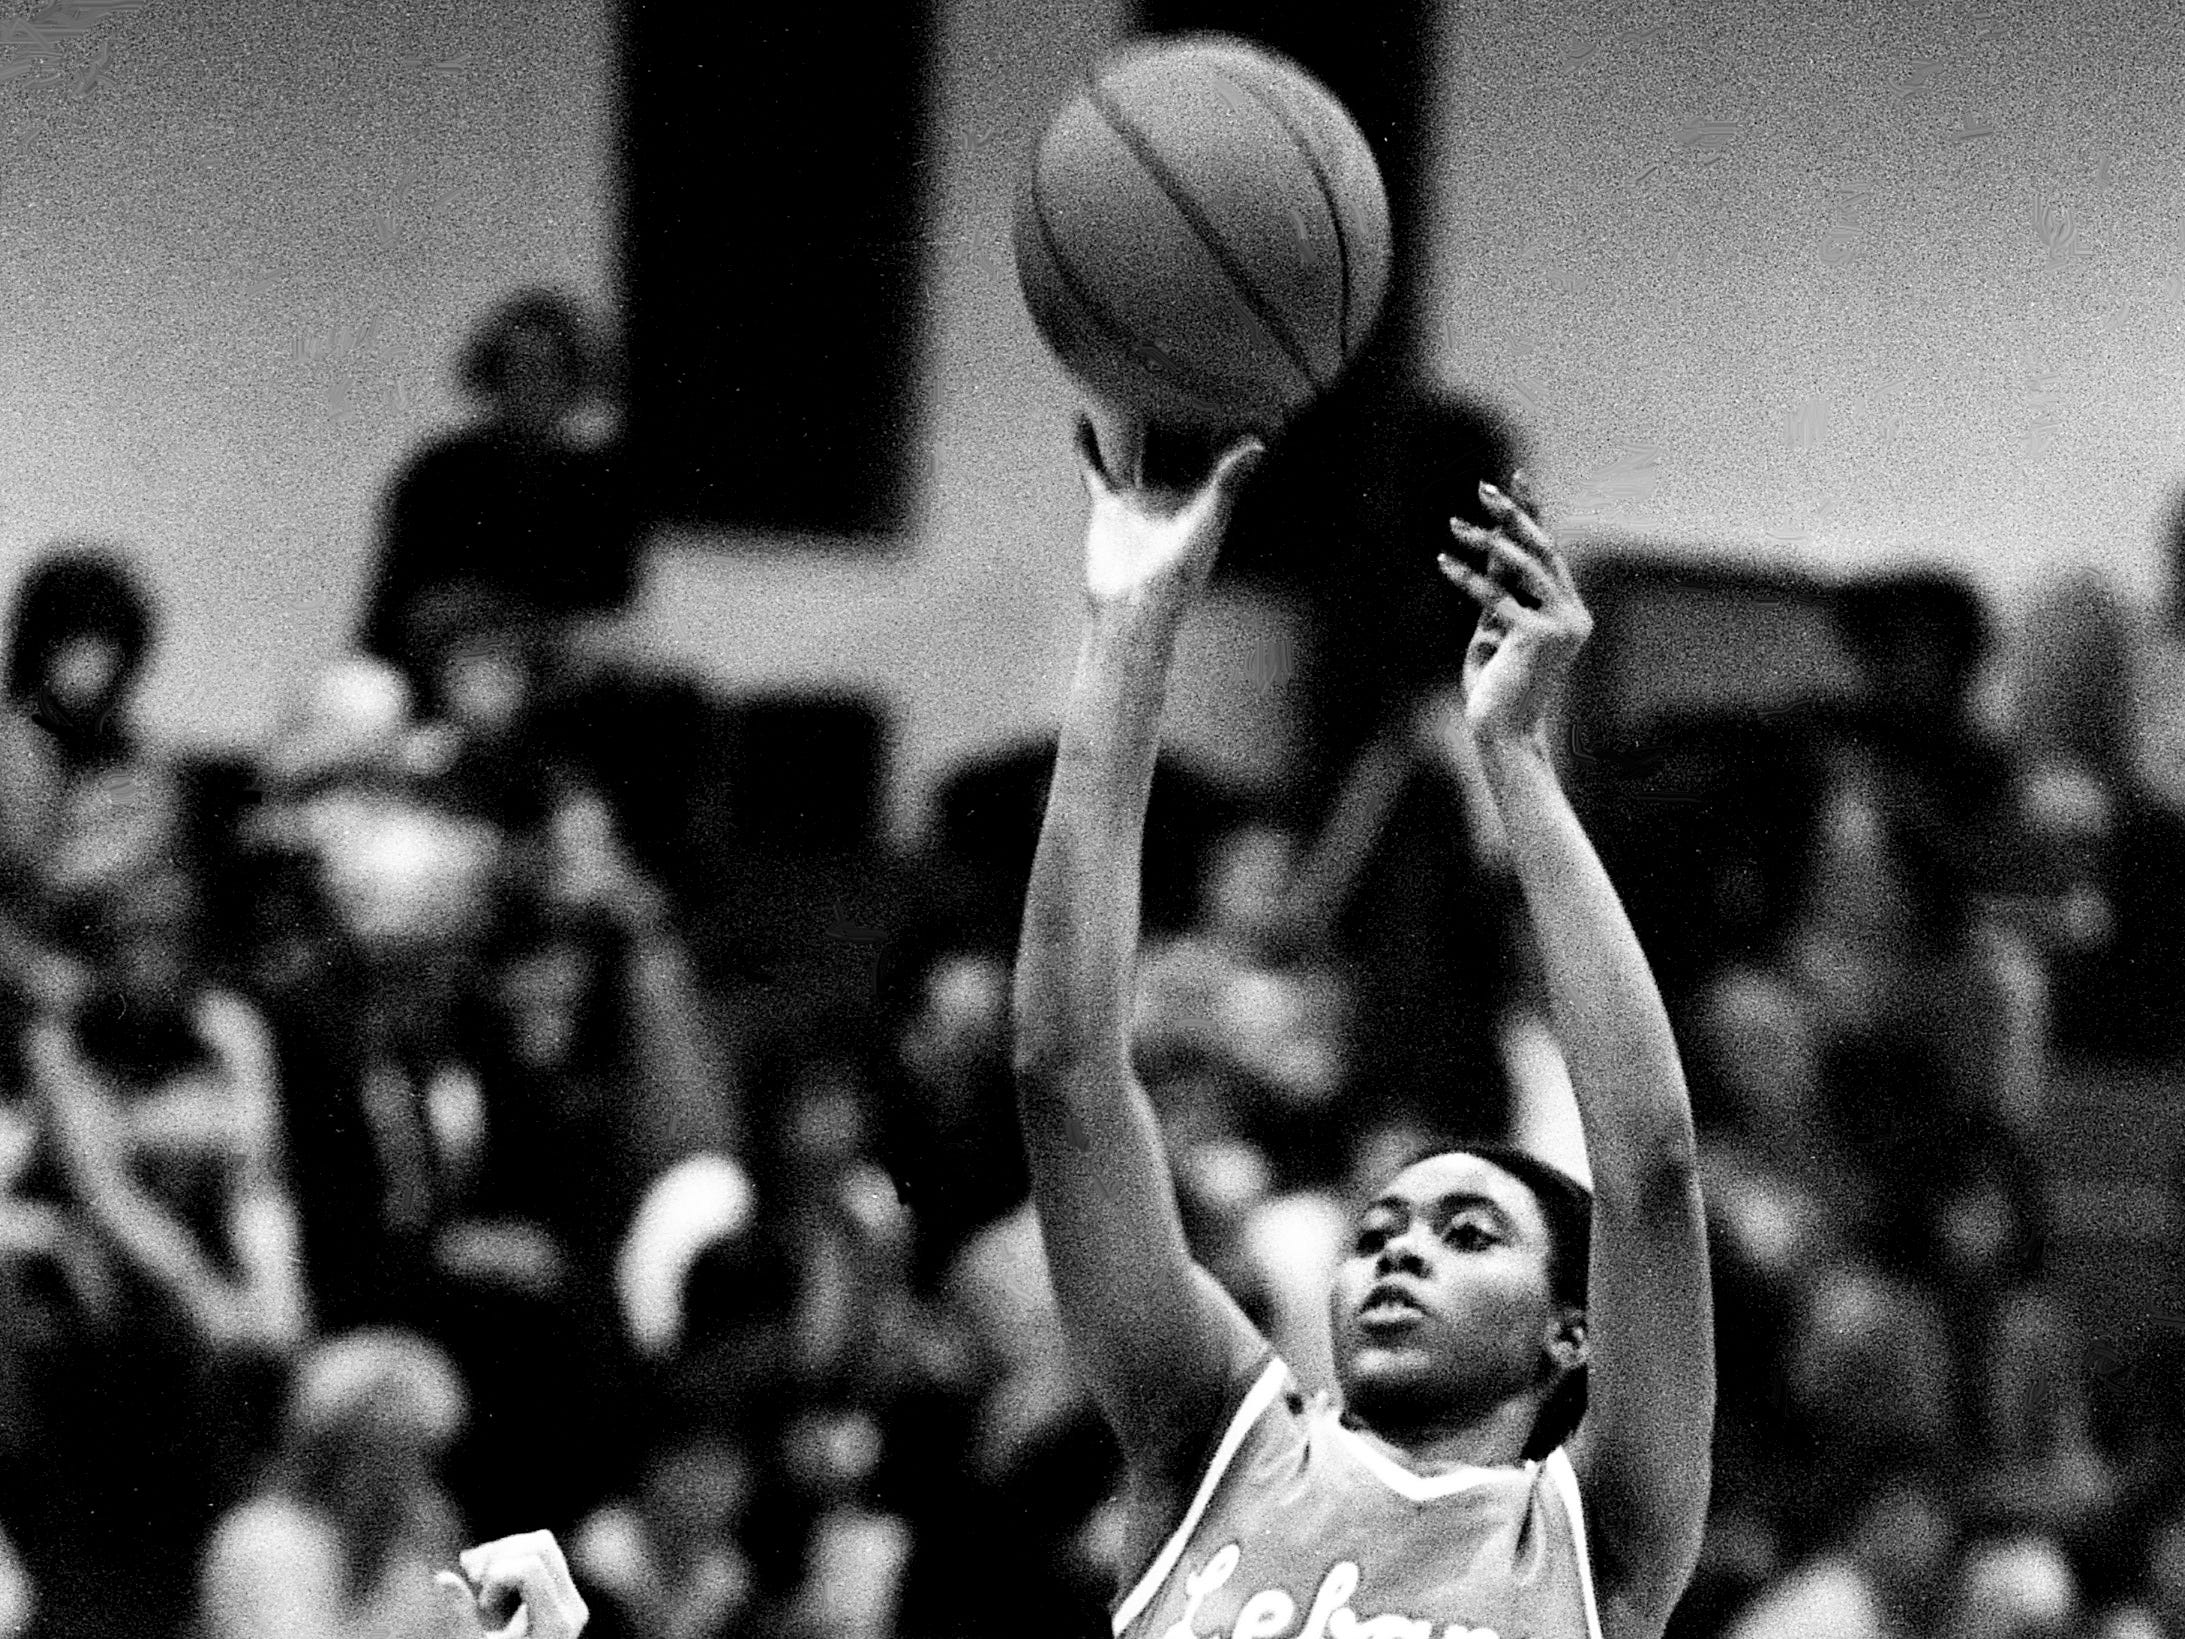 Lebanon High's Gail Corder (30) goes up for a jump shot over Mt. Juliet High defender Rhonda Foster (42) as the Lebanon's Blue Devilettes eked out a 30-28 victory on the road Jan. 16, 1979.